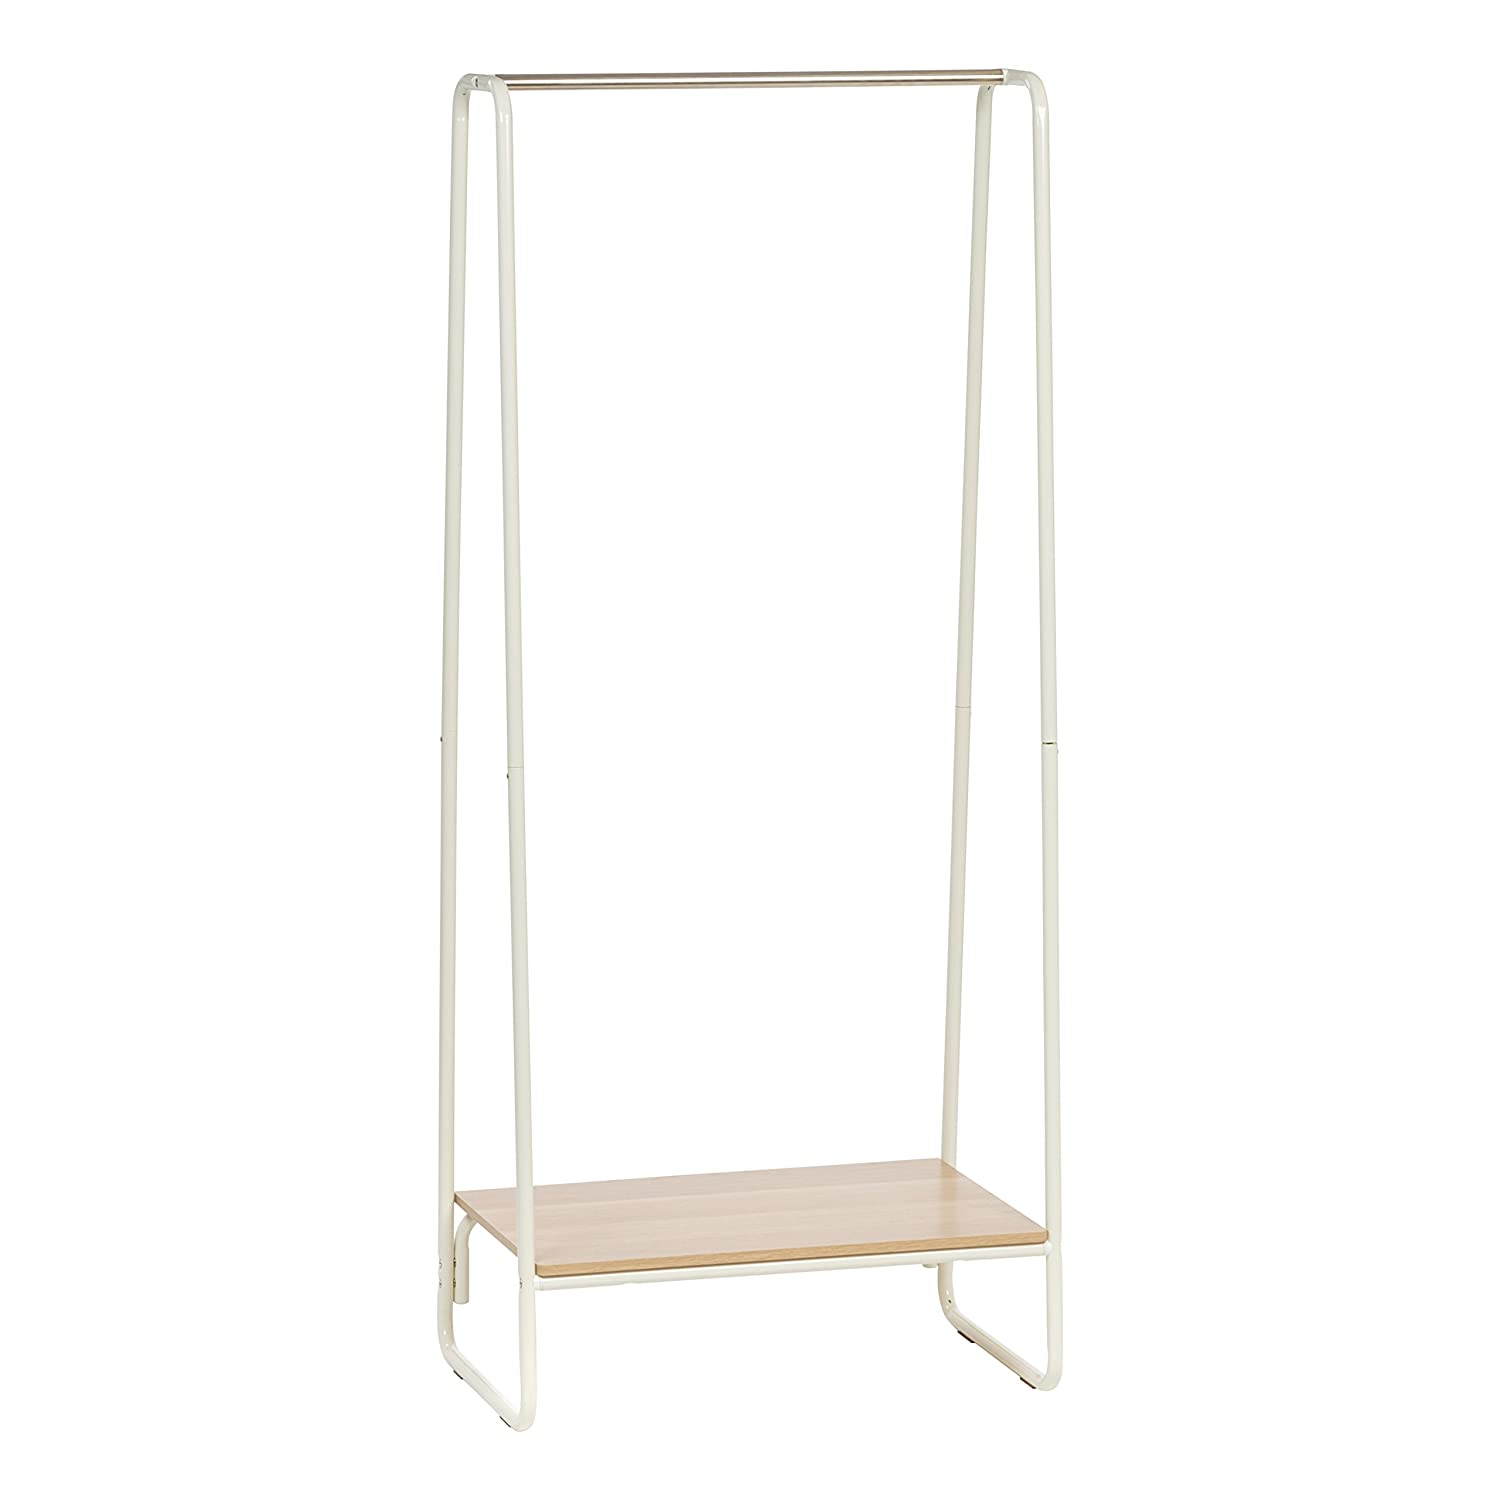 IRIS Metal Garment Rack with Wood Shelf, White and Light Brown IRIS USA Inc. 596237